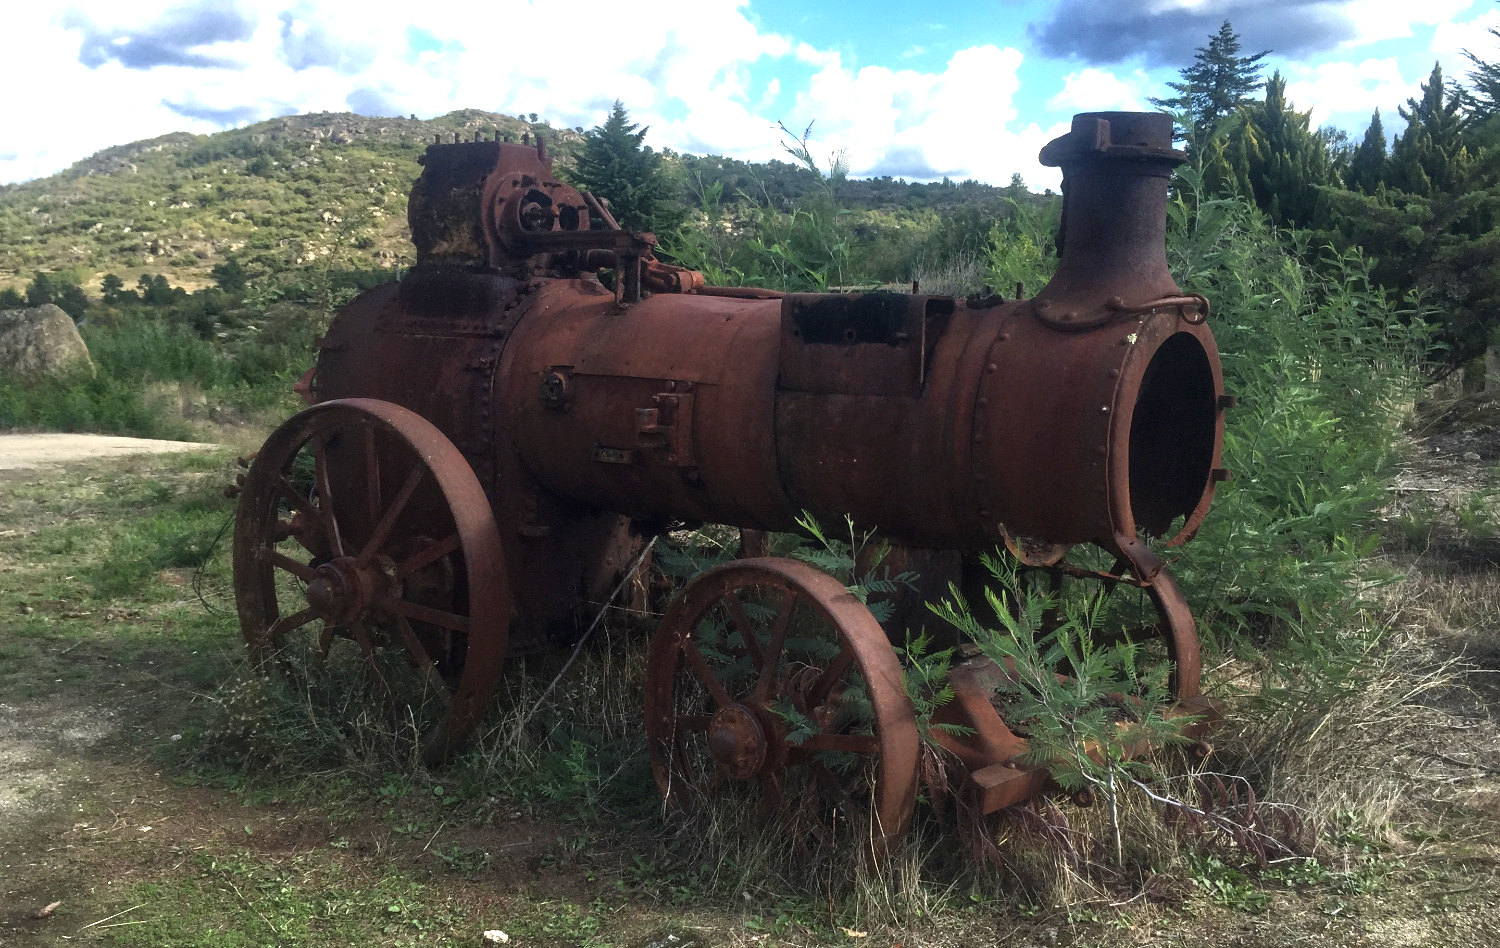 A rusting traction engine probably used to pump water